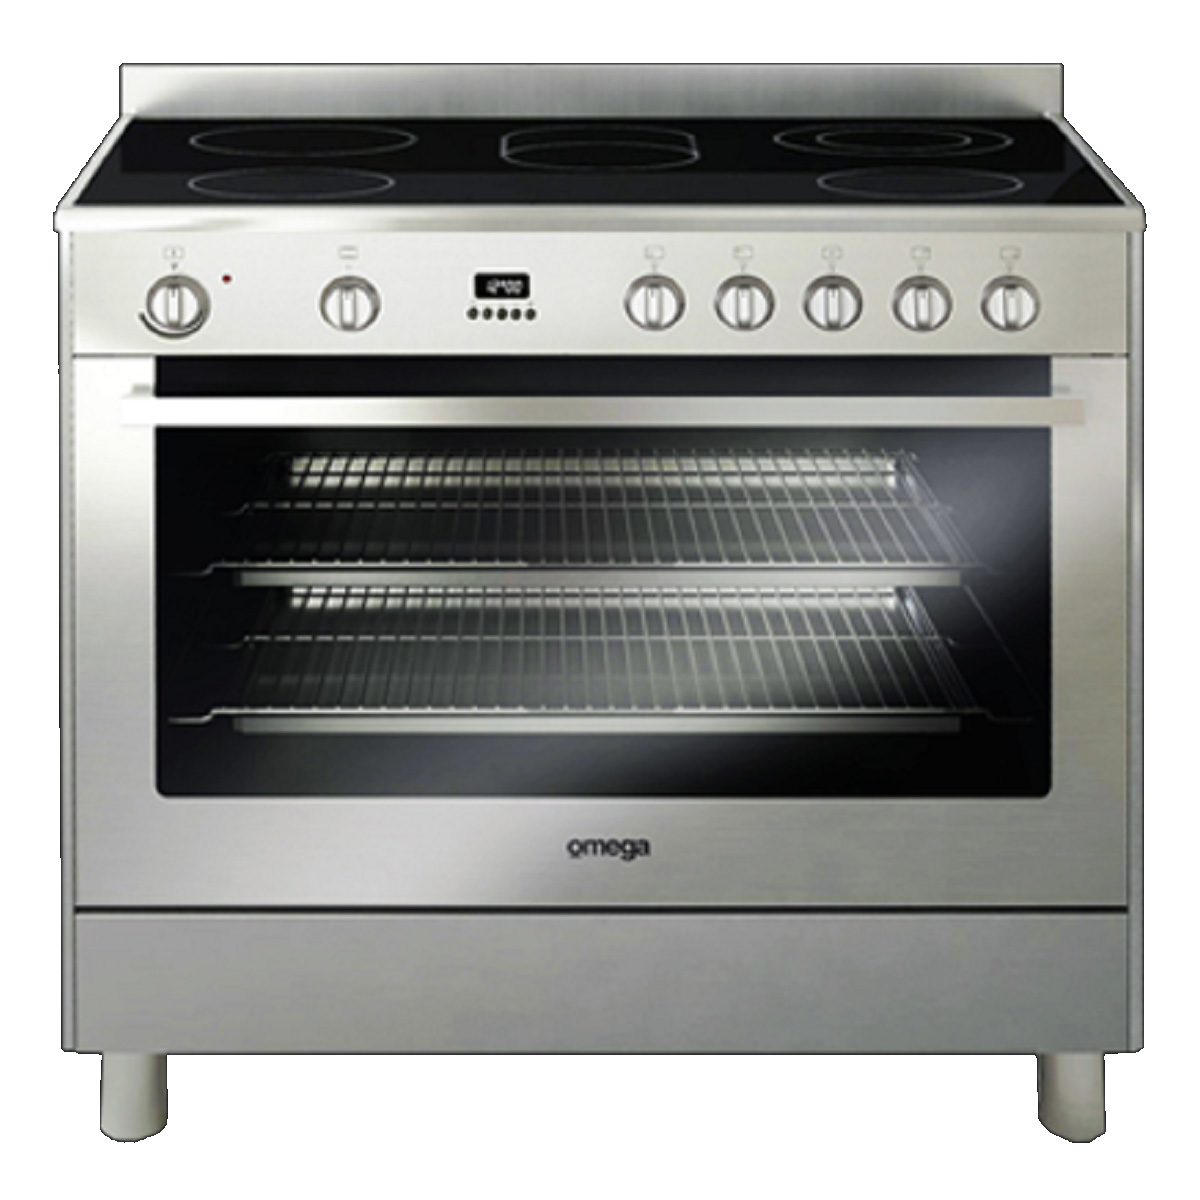 Omega OF902XZ Freestanding Cooker 28465